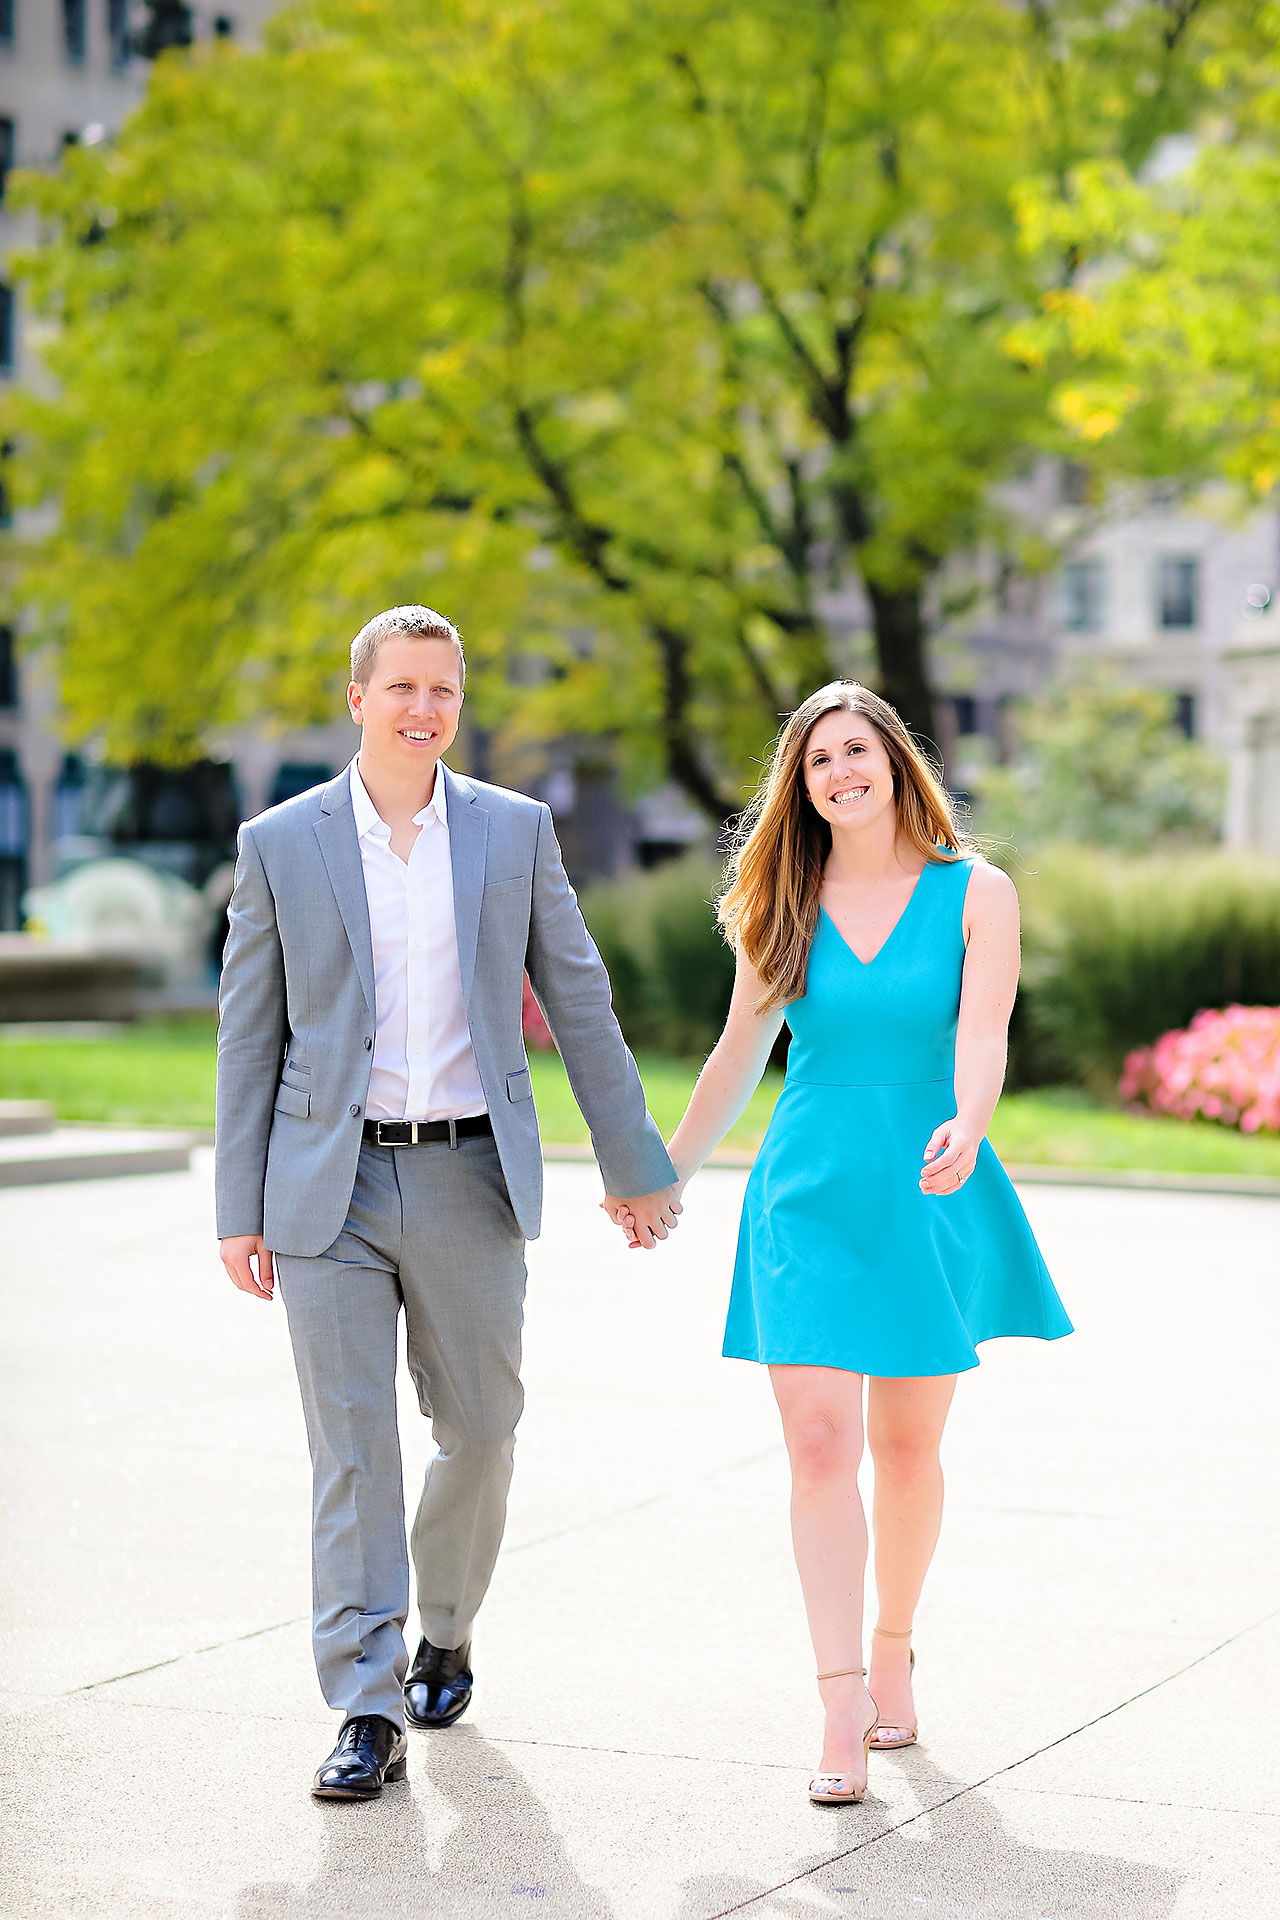 Chelsea Jeff Downtown Indy Engagement Session 009